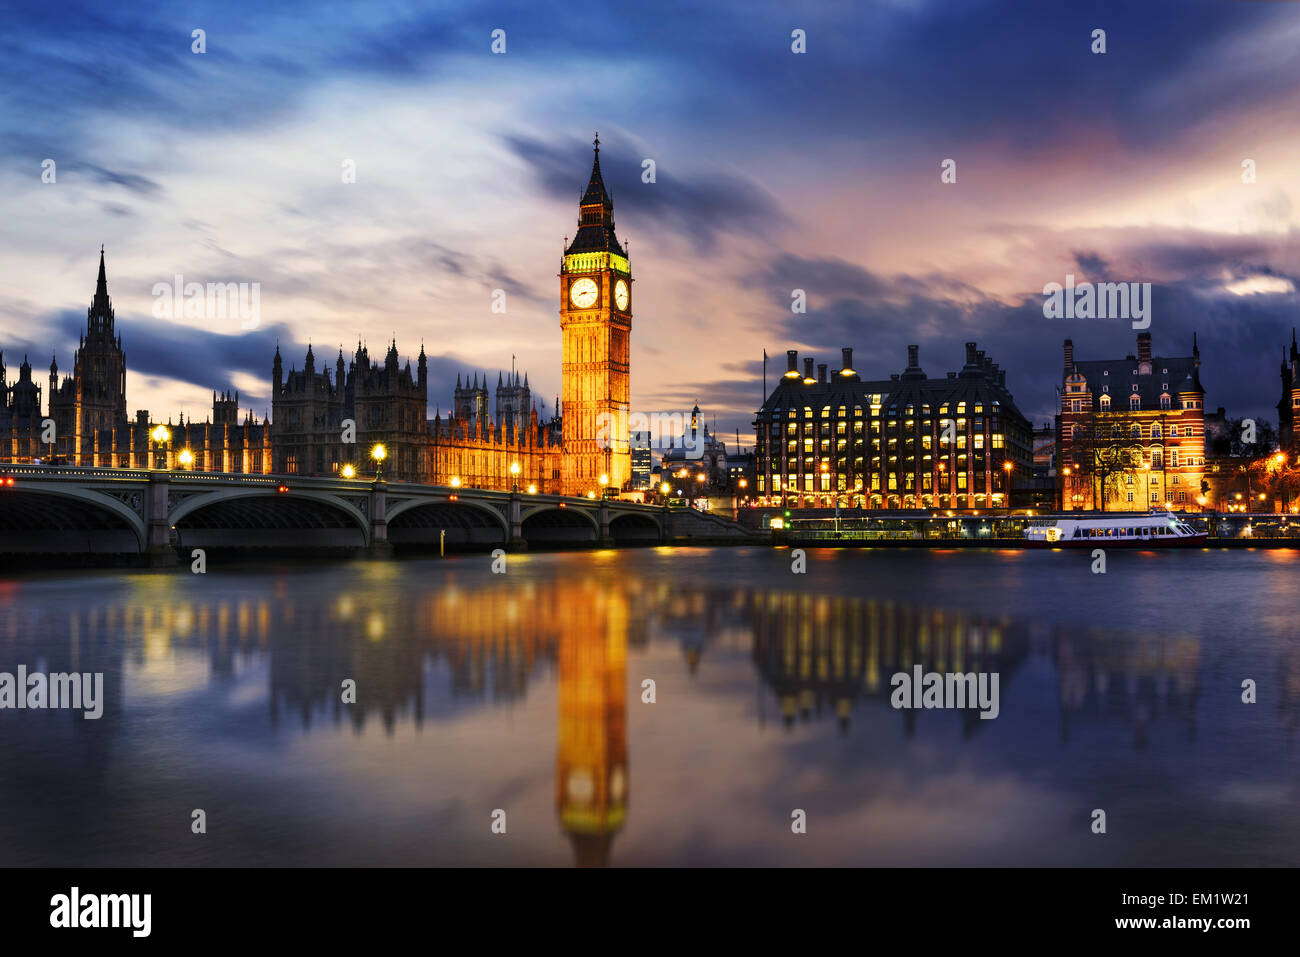 Big Ben and Houses of parliament at dusk, London, UK Stock Photo